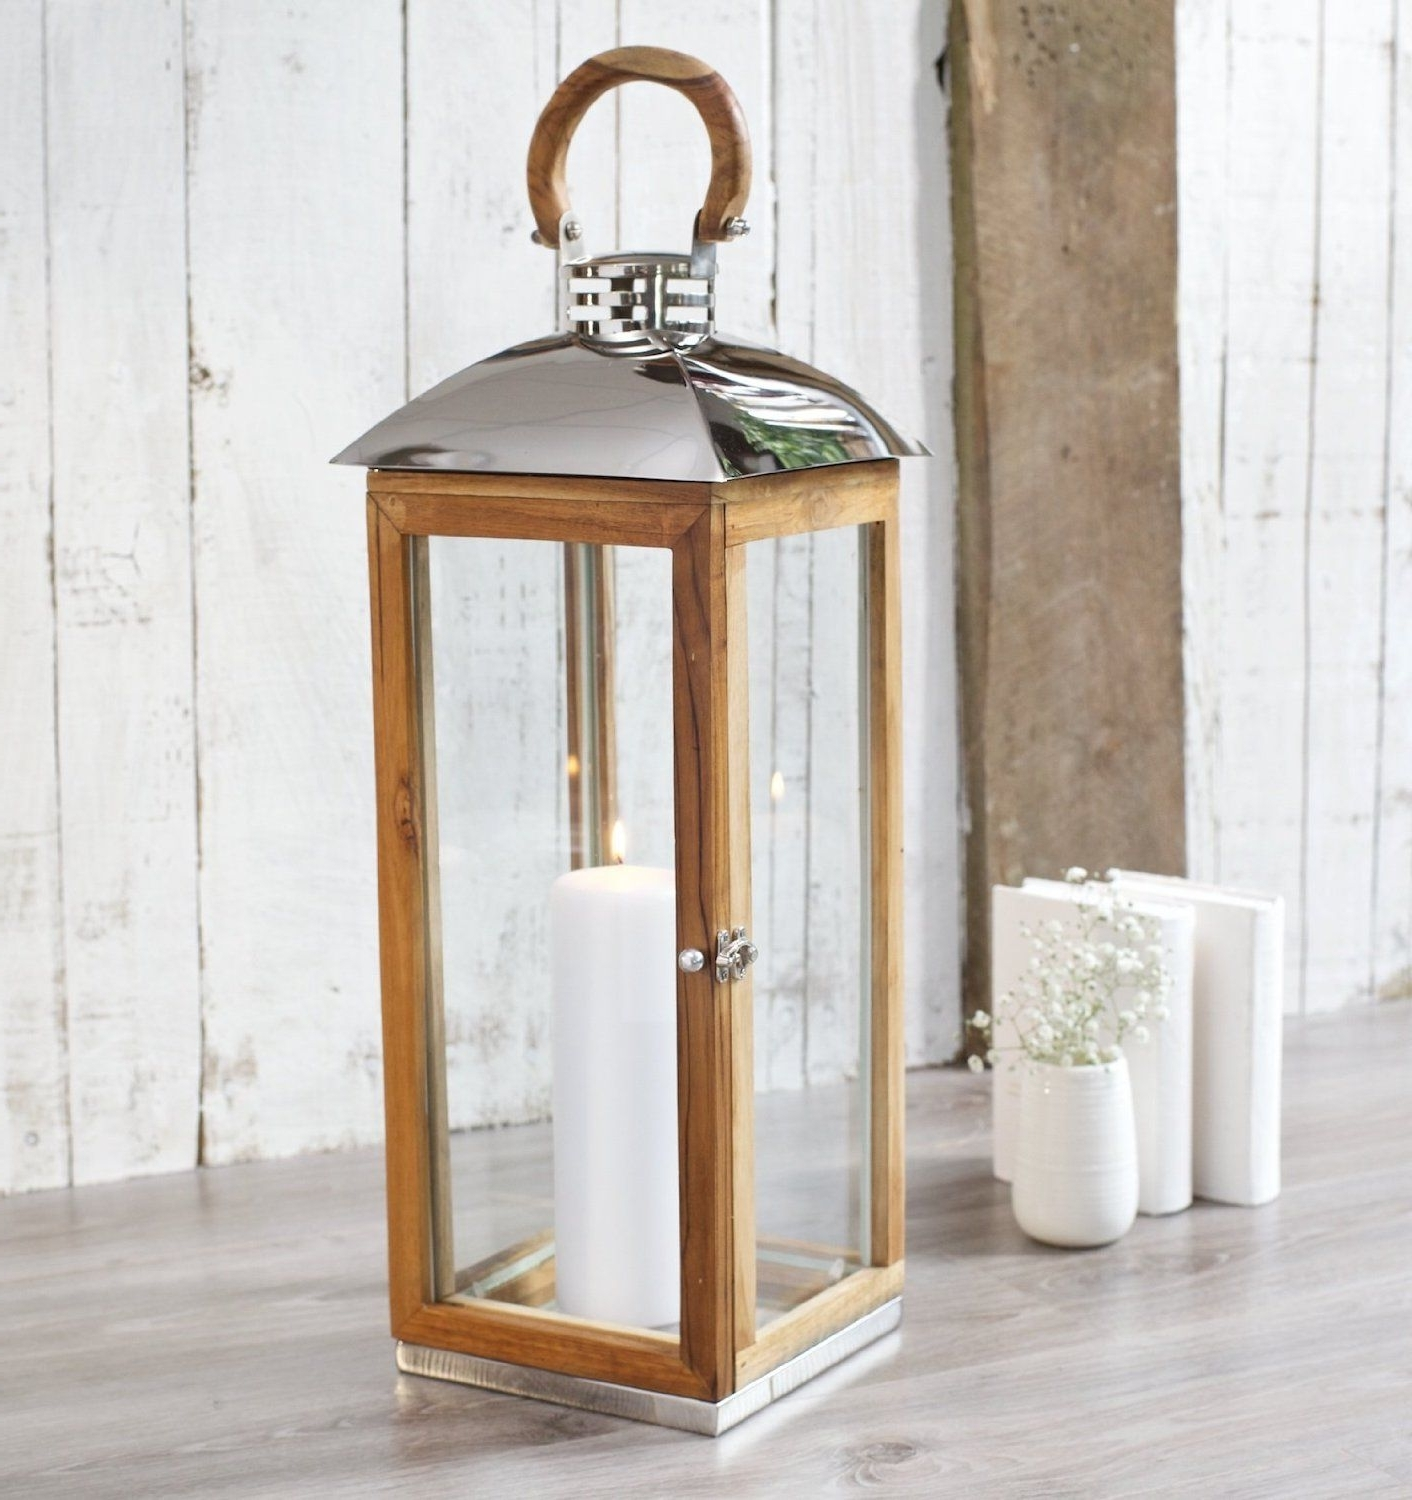 2018 Outdoor Teak Lanterns Pertaining To Hope Cove – Candle Lantern Extra Tall – High Quality Teak Wood (View 18 of 20)